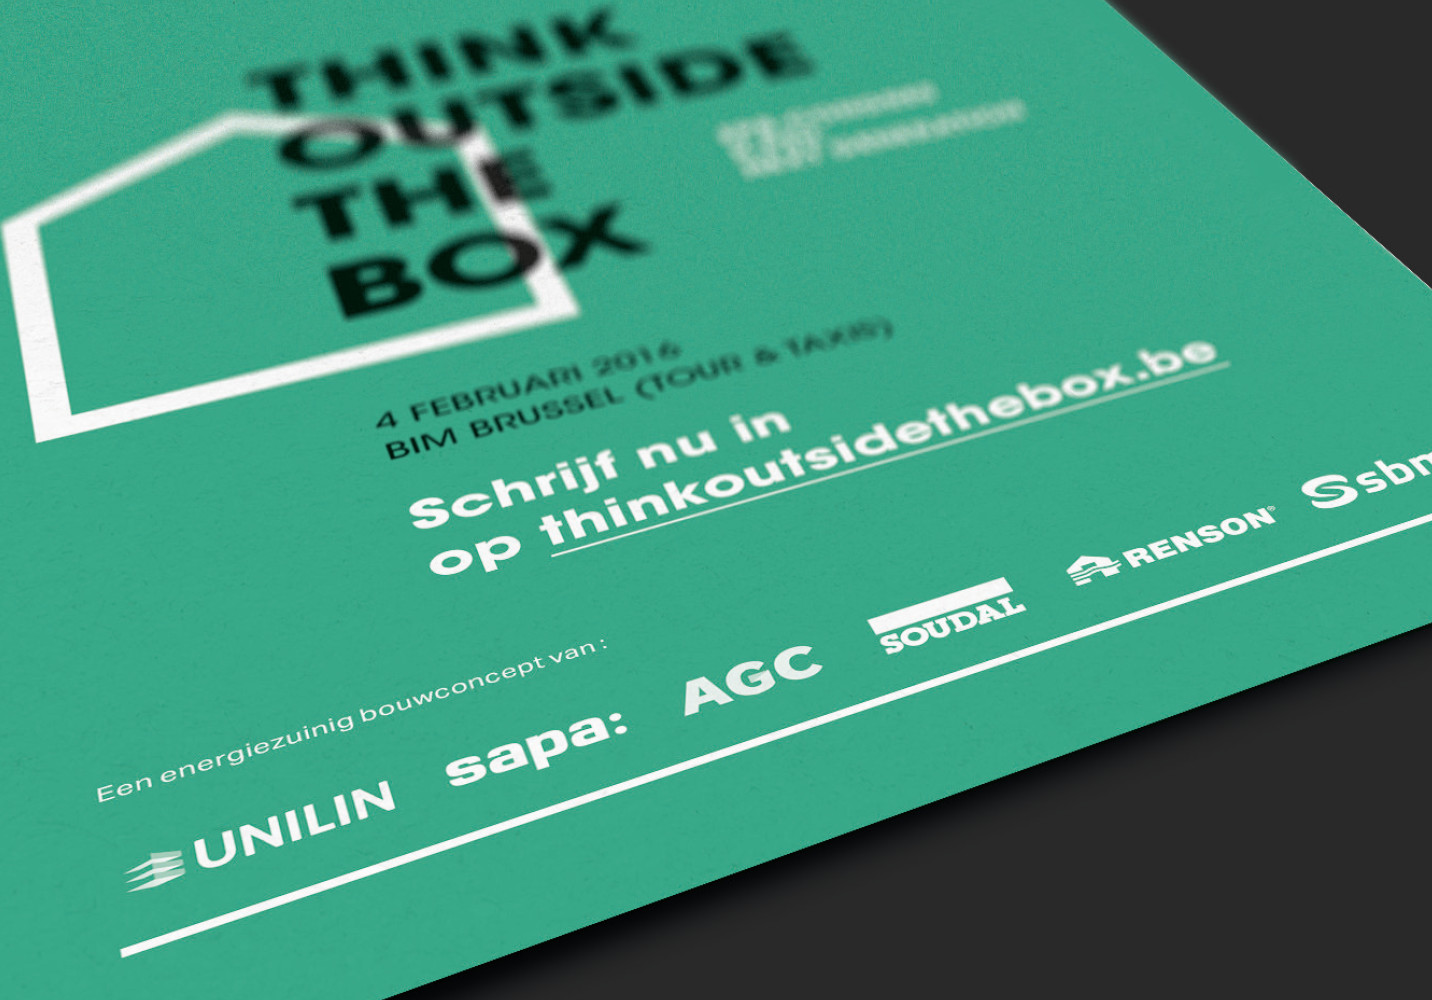 thinkoutsidethebox_4